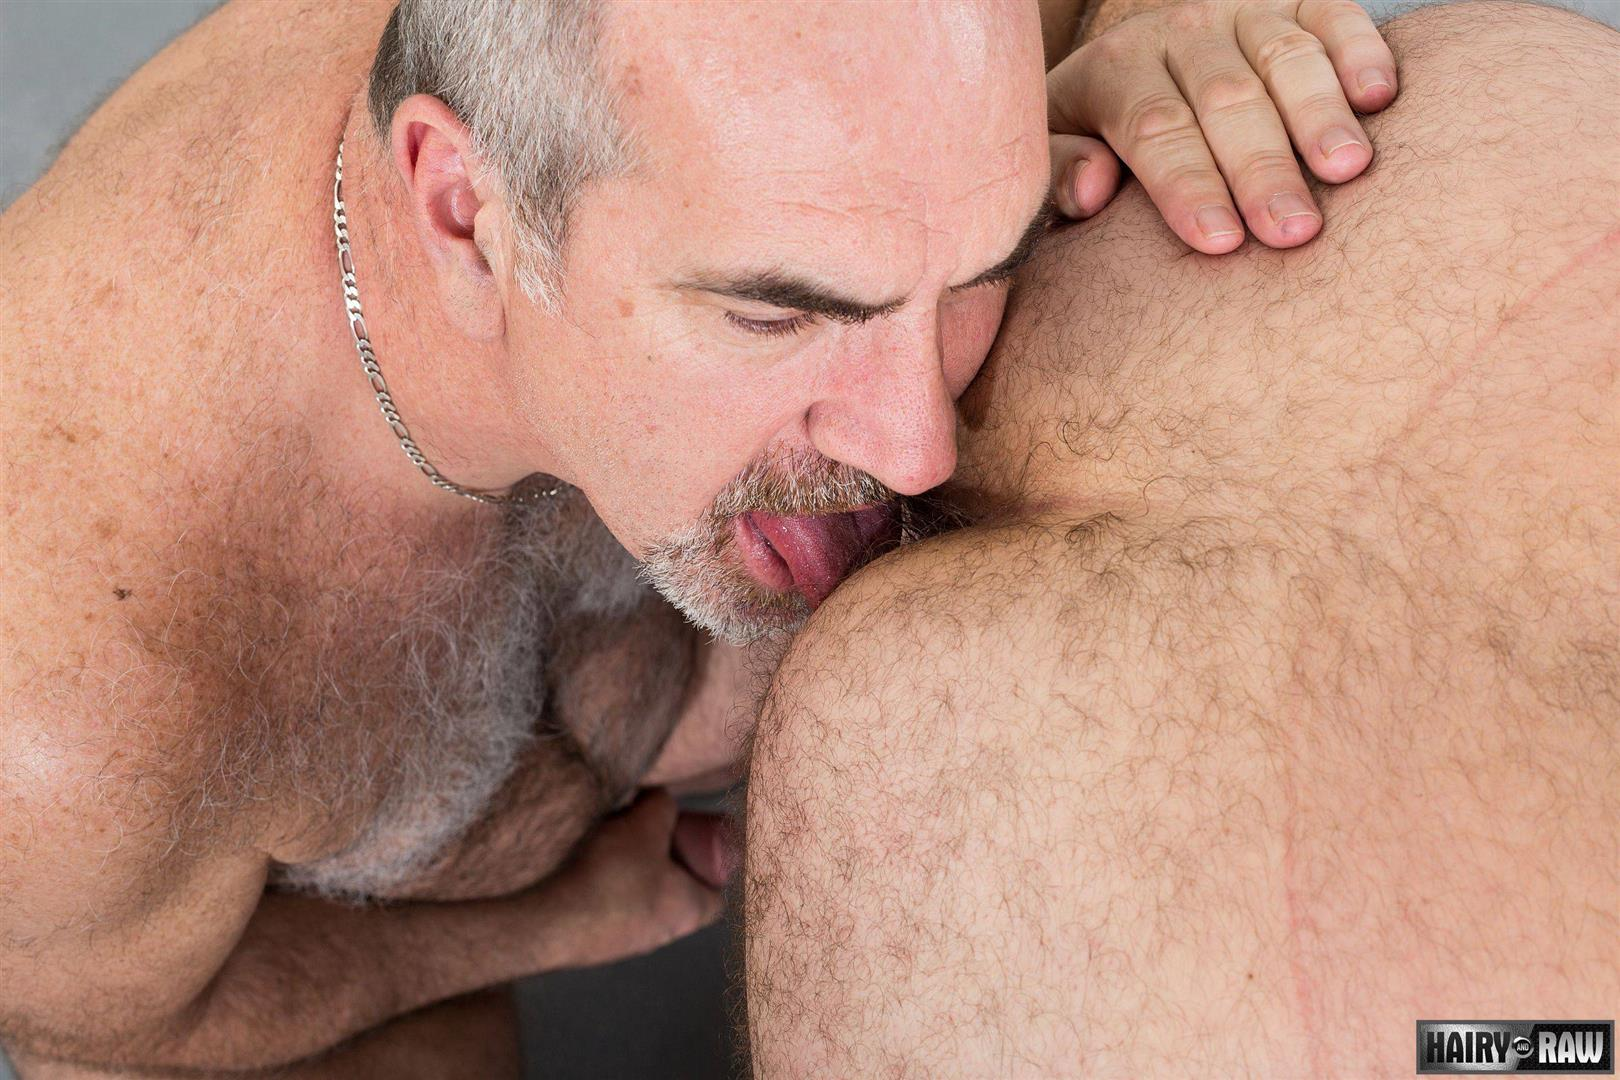 Hairy-and-Raw-Vince-Stewart-and-Martin-Pe-Hairy-Chubby-Dads-Barebacking-Uncut-Cocks-Amateur-Gay-Porn-15 Hairy Chubby Dads With Thick Uncut Cocks Fucking Bareback